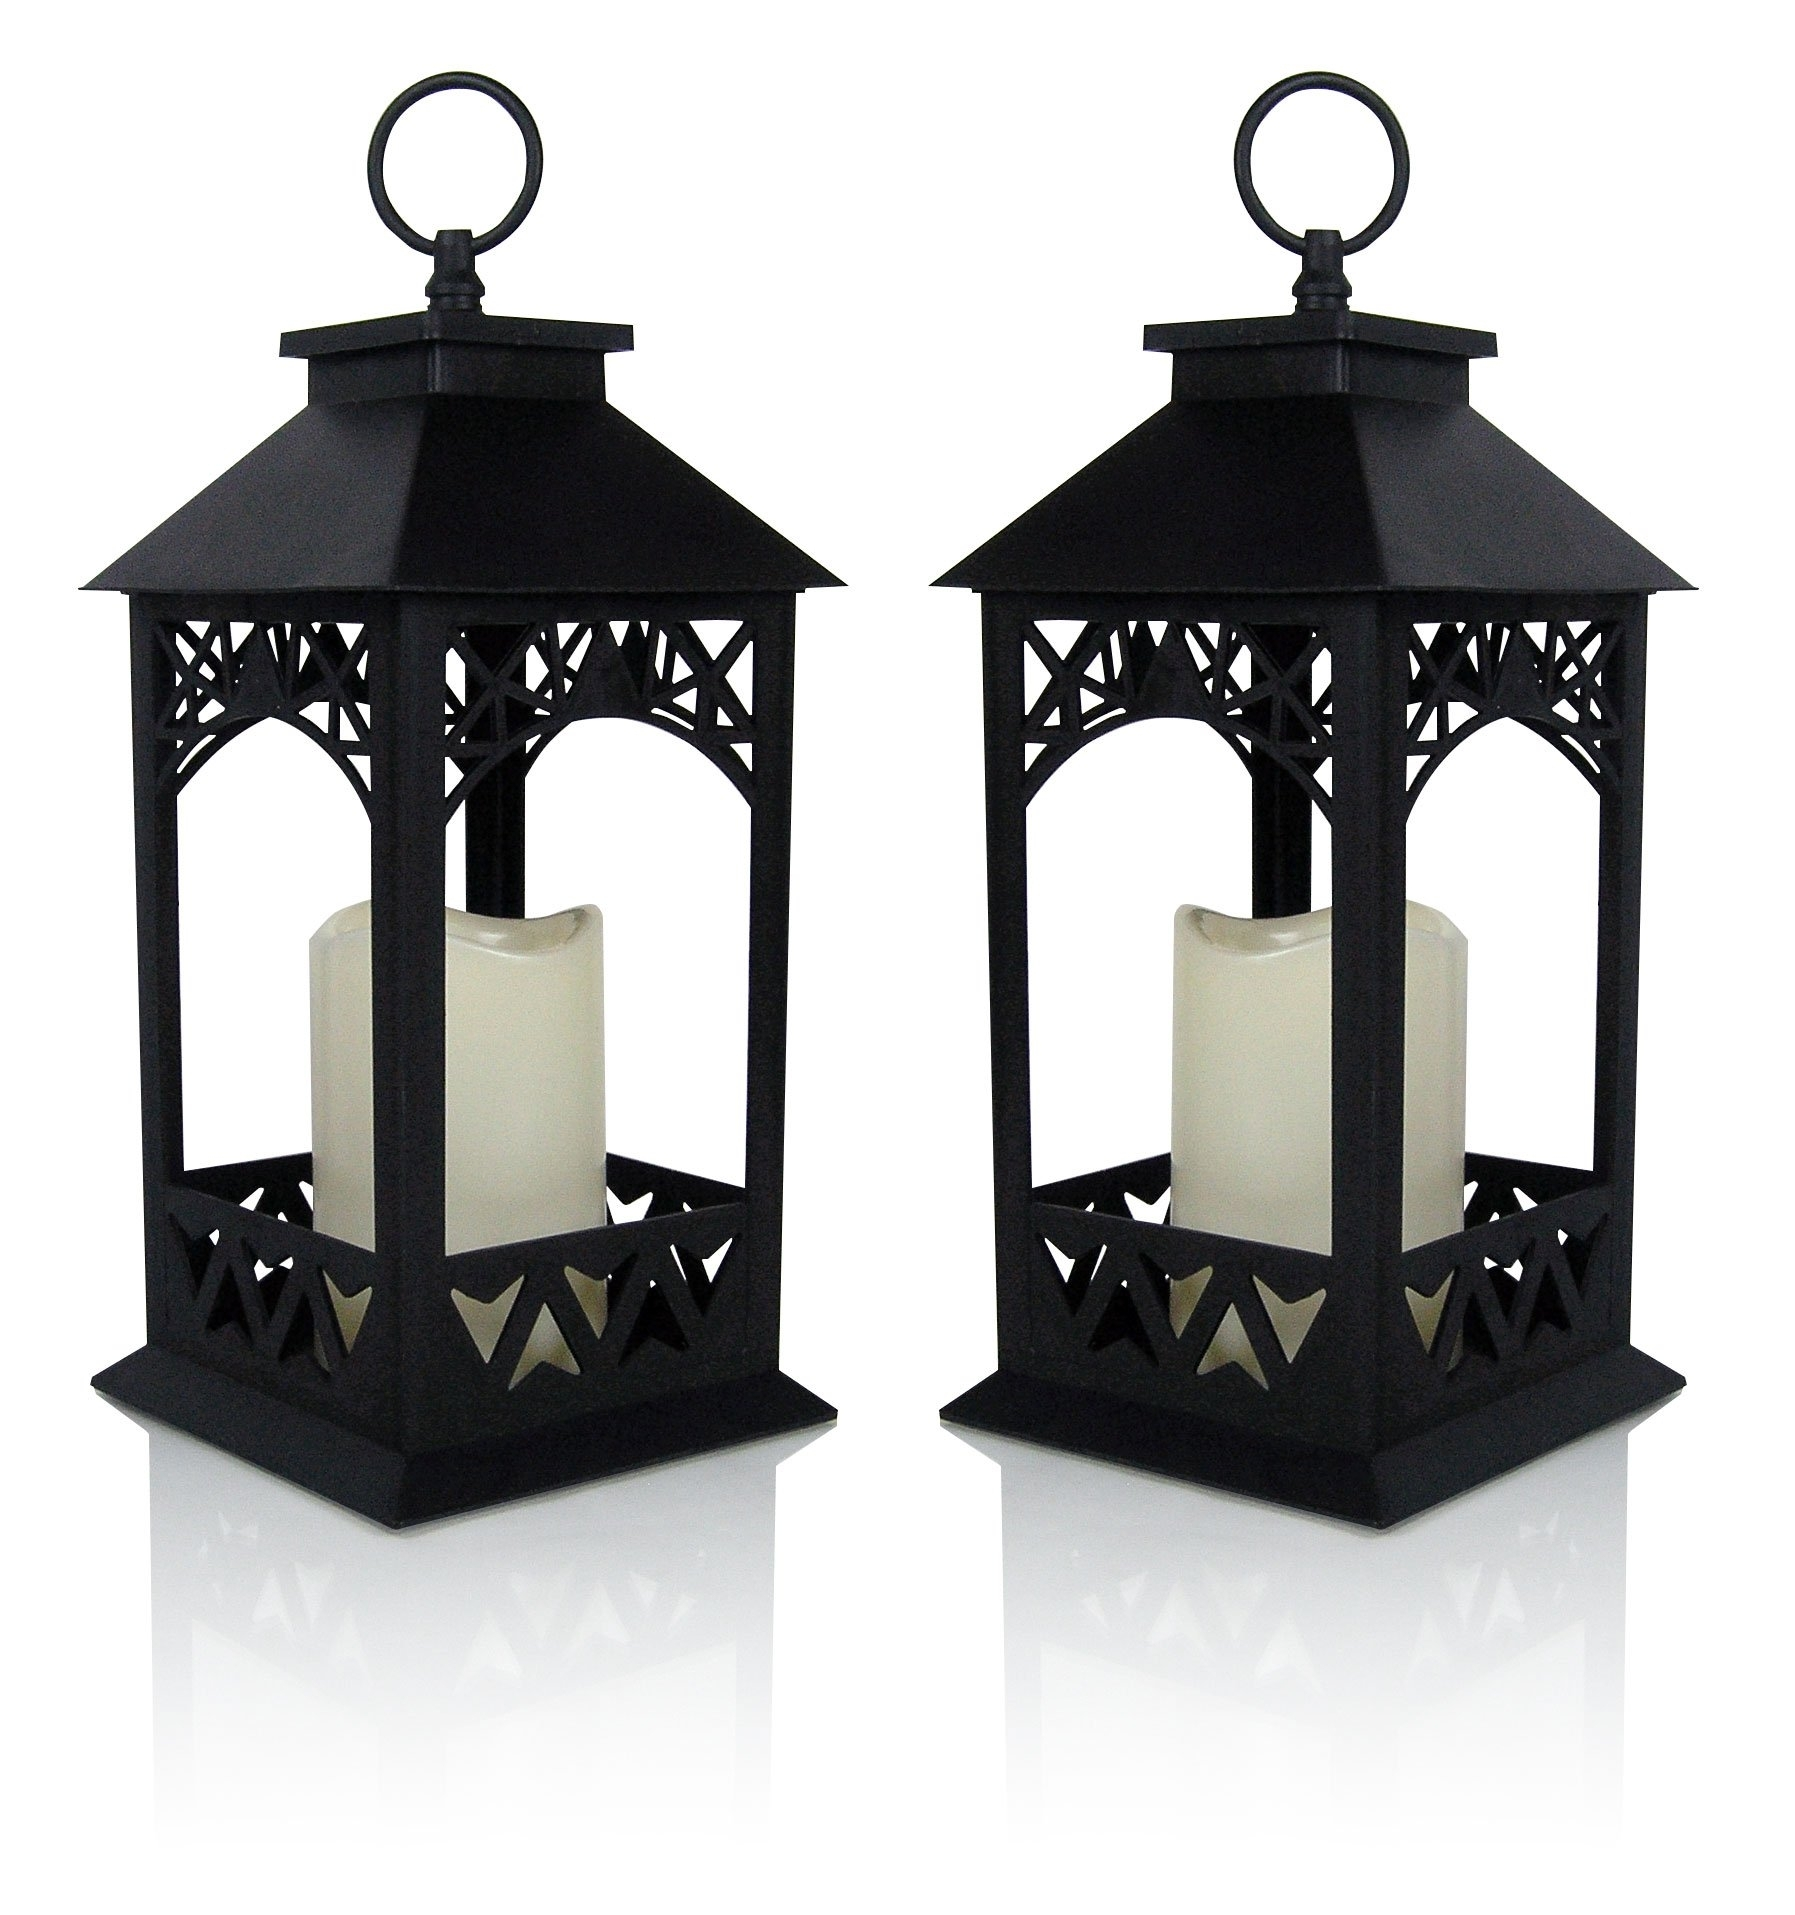 Cheap Outdoor Lanterns Candle, Find Outdoor Lanterns Candle Deals On Intended For Outdoor Lanterns With Led Candles (View 10 of 20)